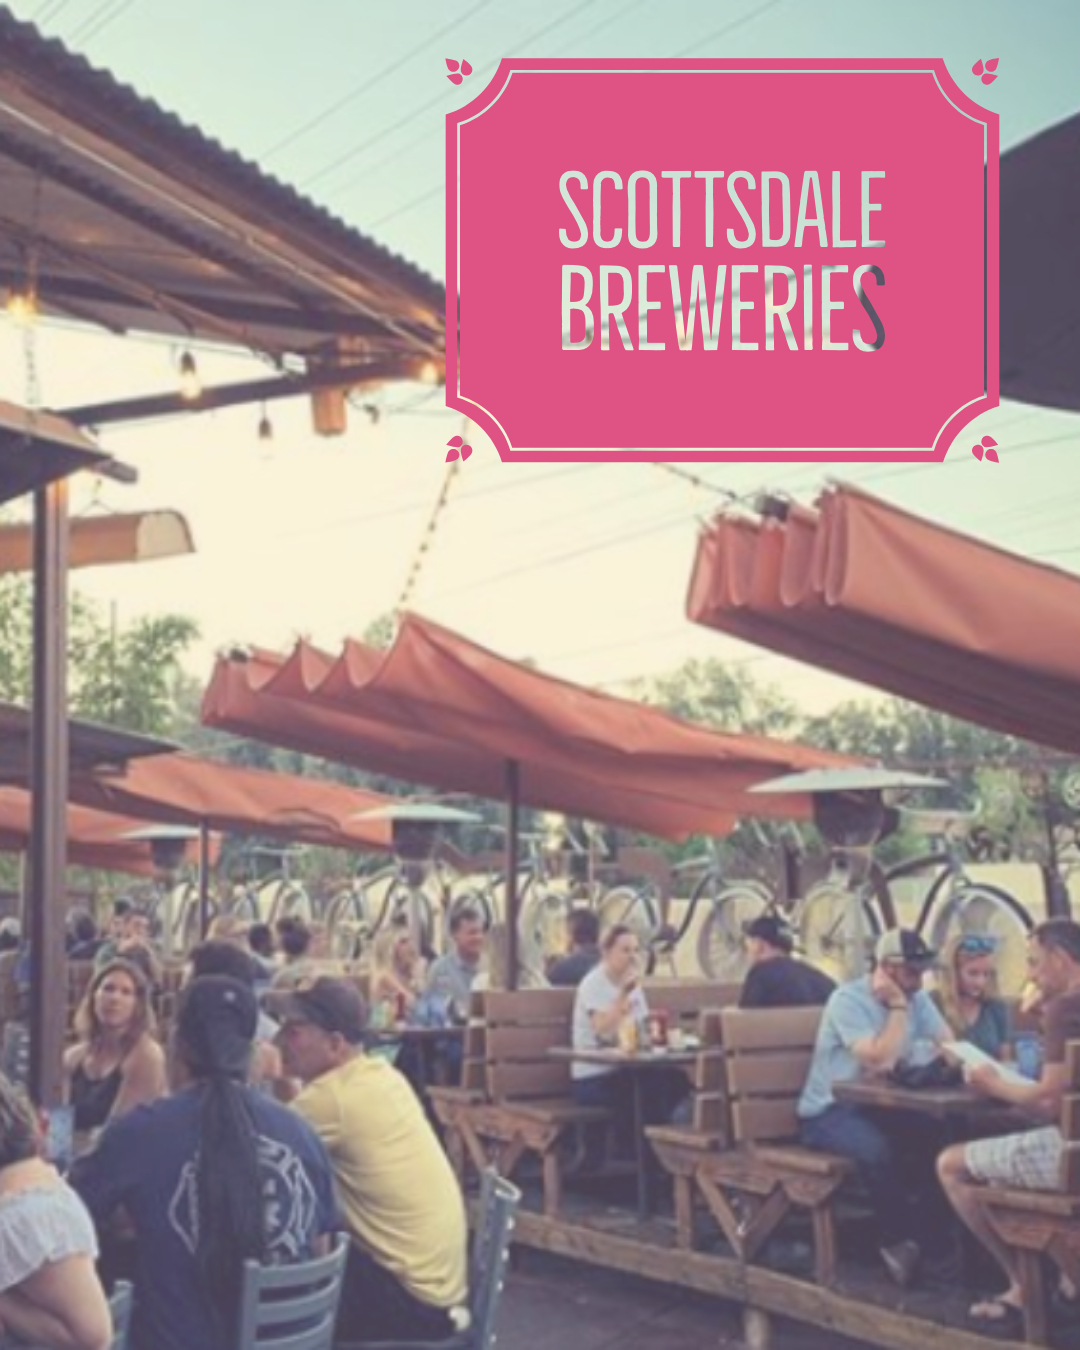 scottsdale breweries to visit for your bachelorette party